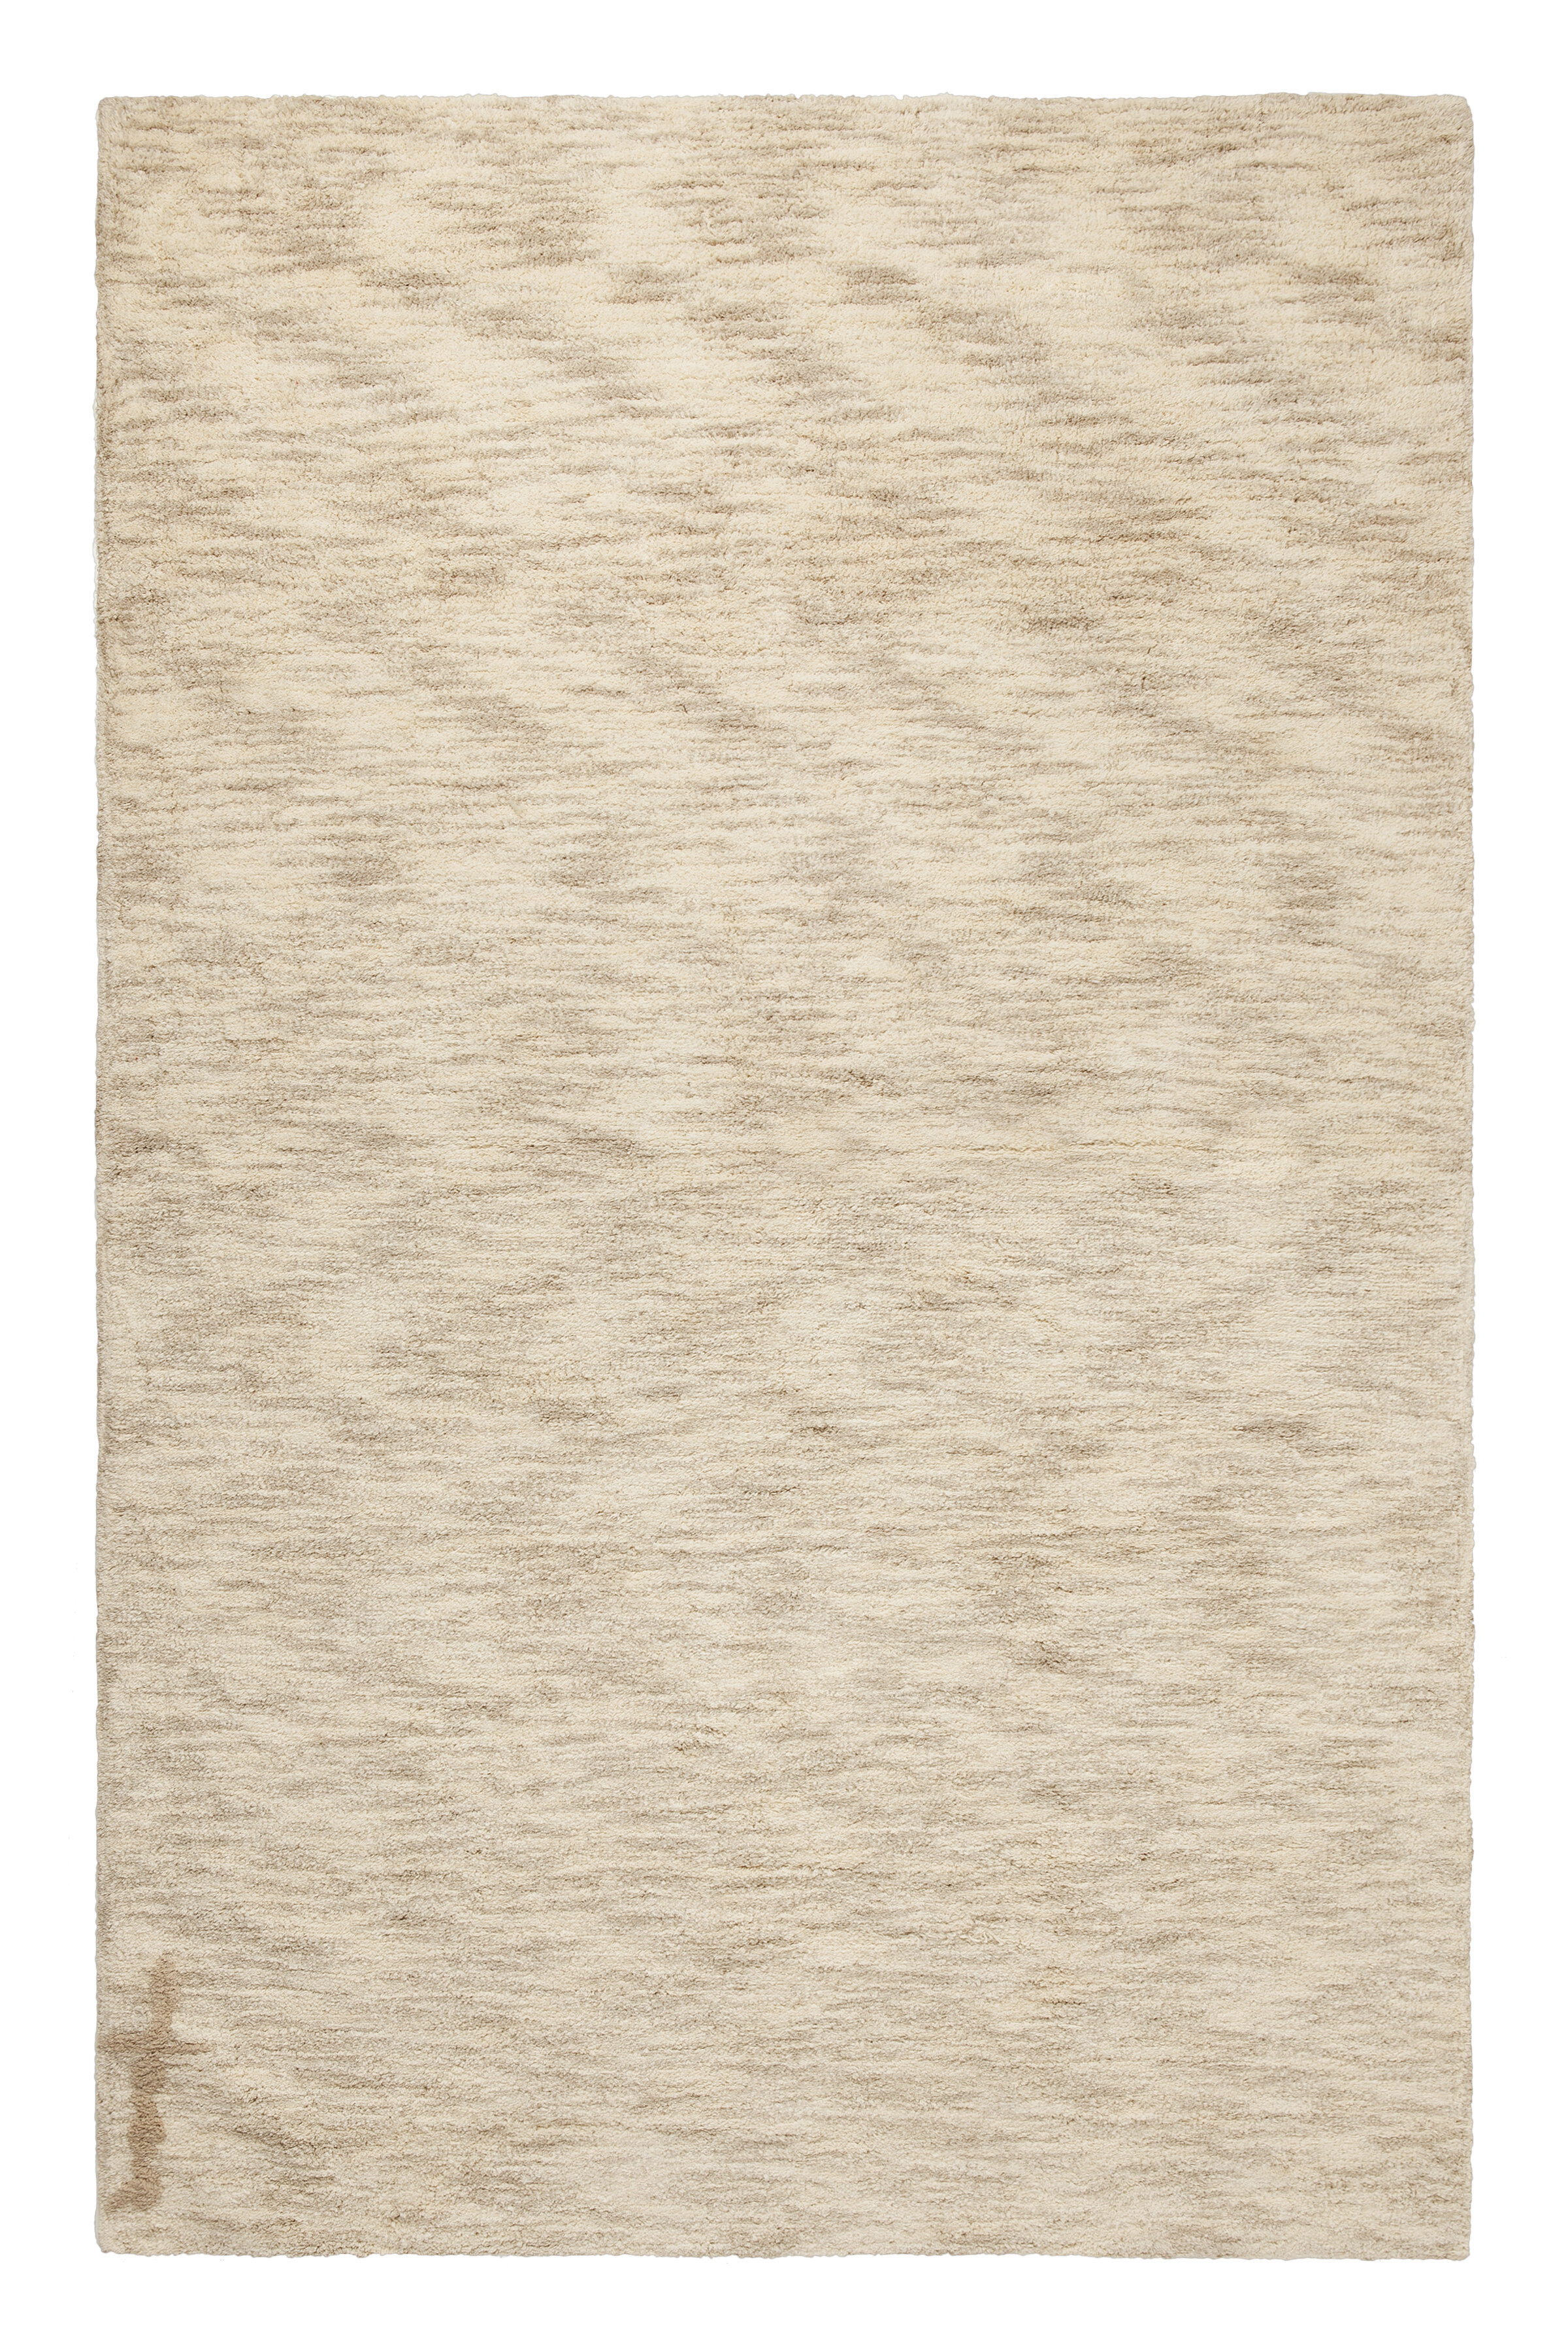 Hand Tufted Sand Beige Area Rug